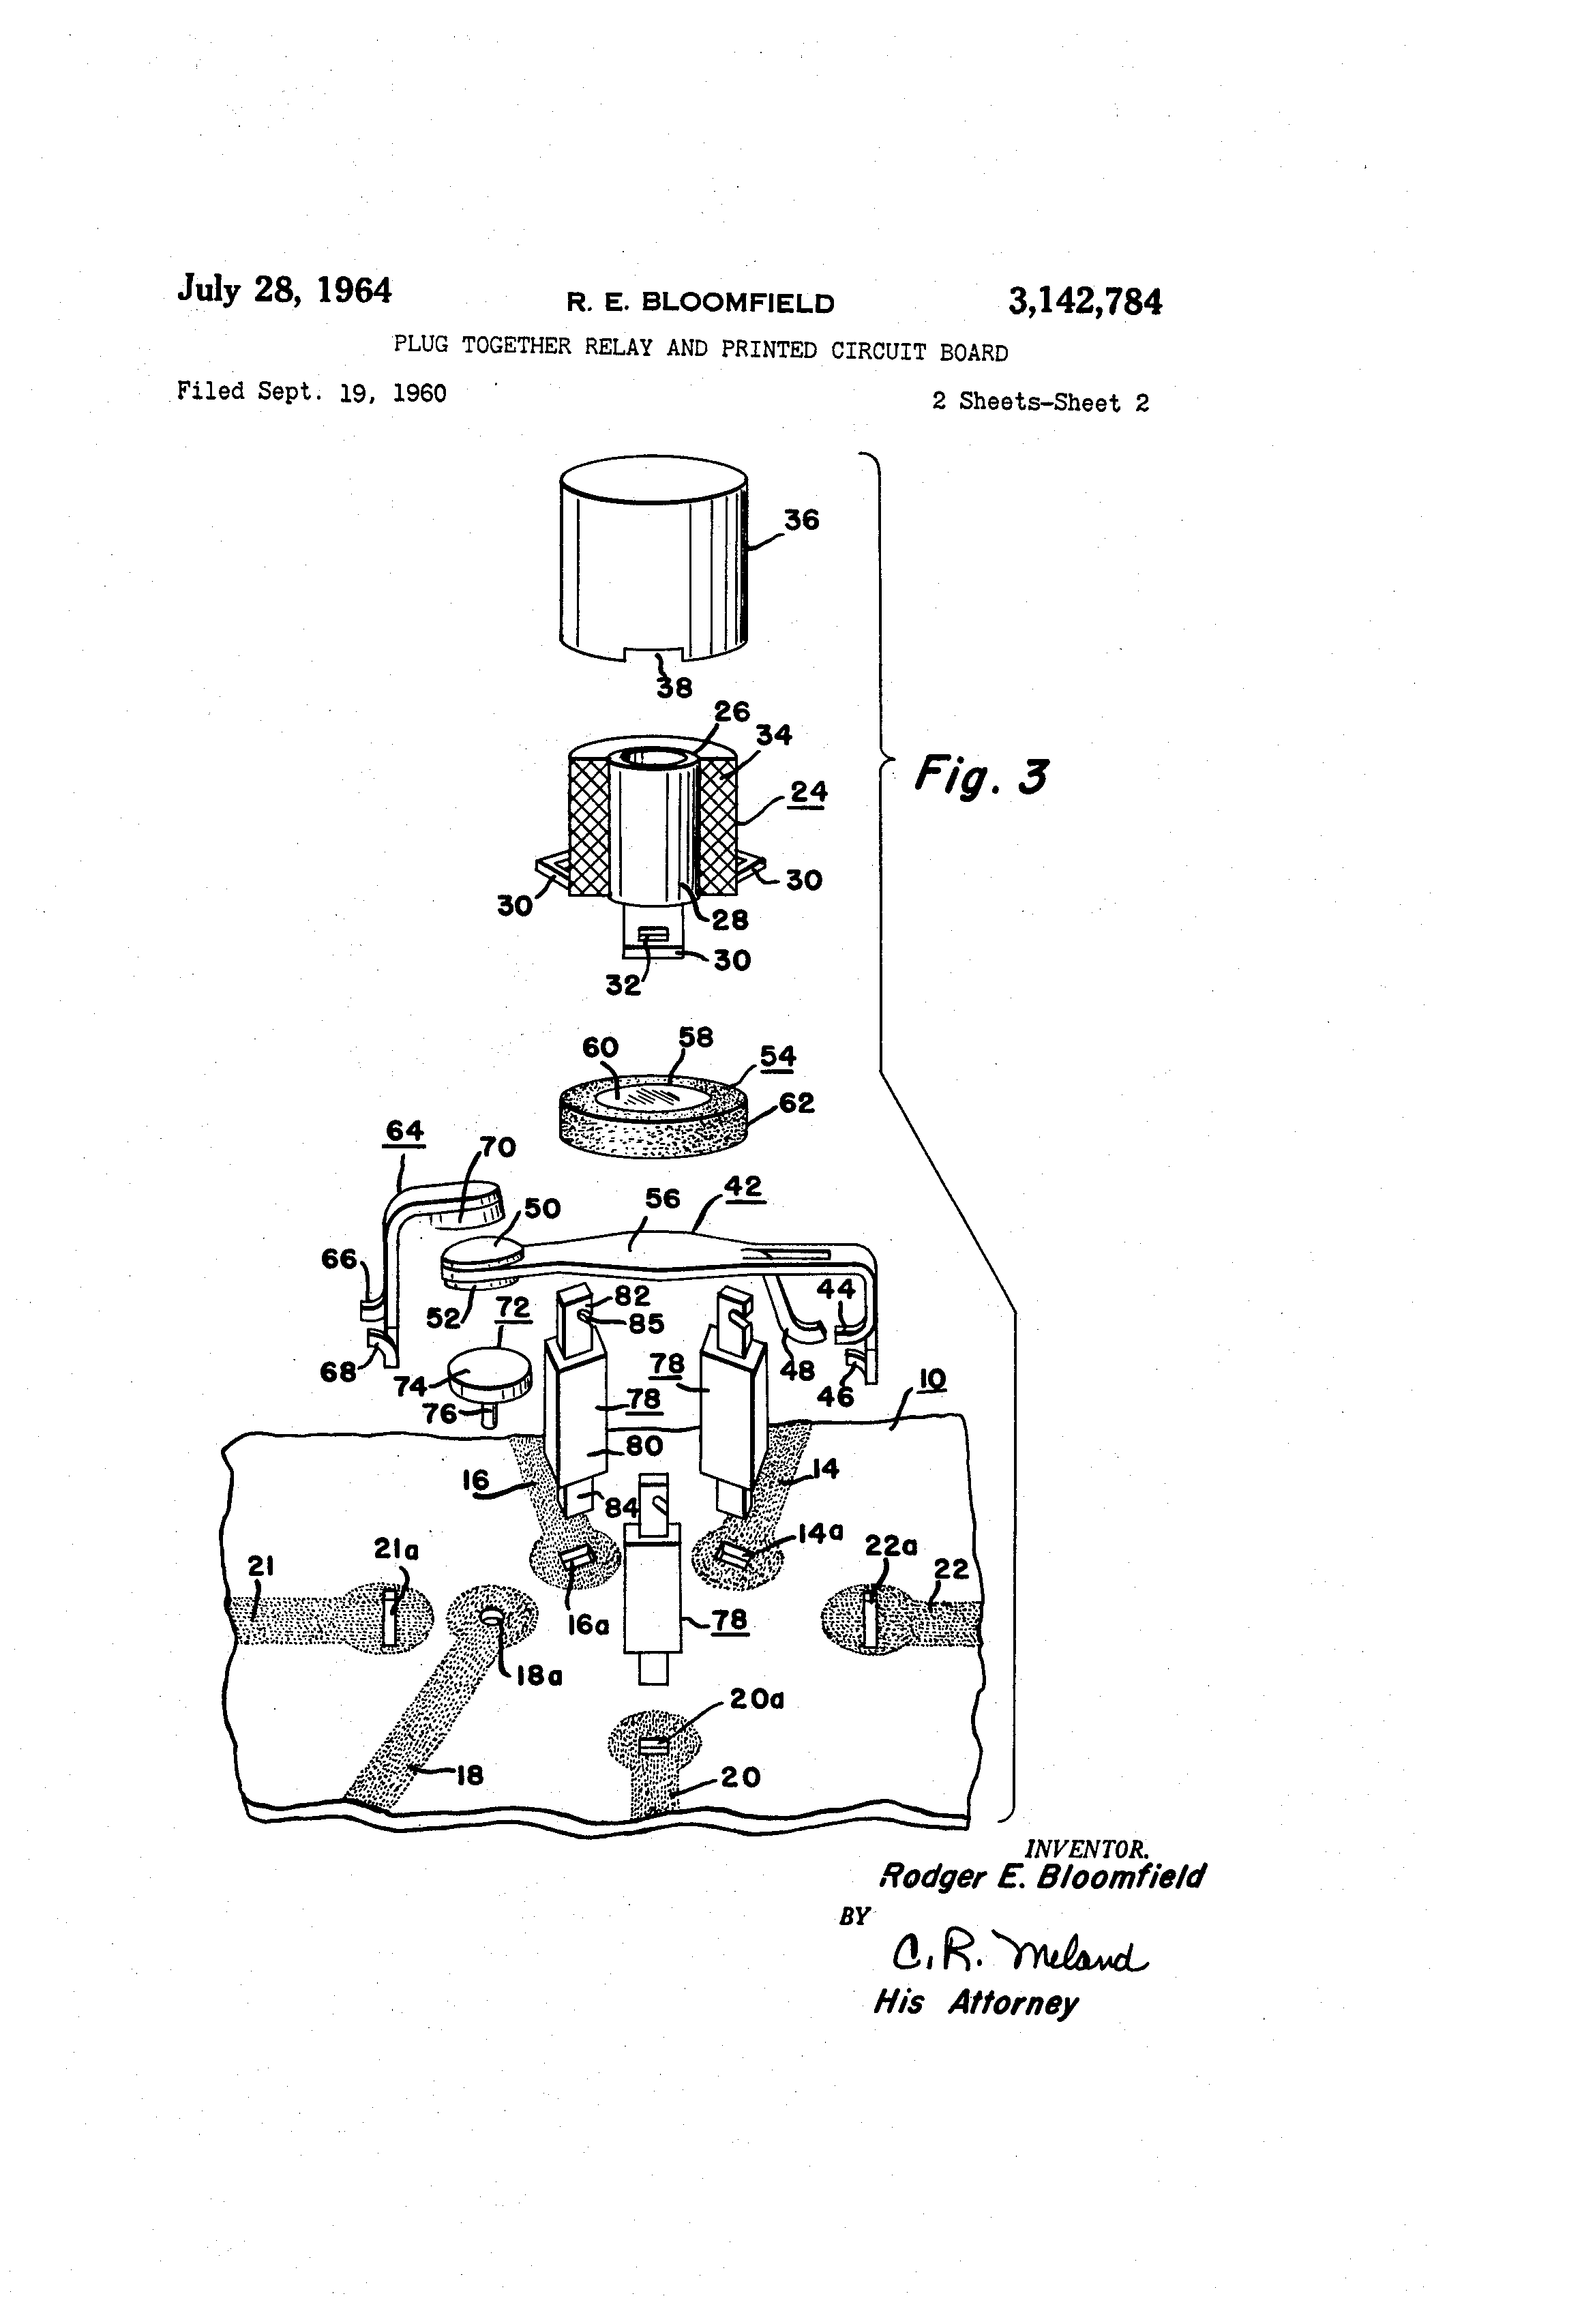 patent us3142784 - plug together relay and printed circuit board